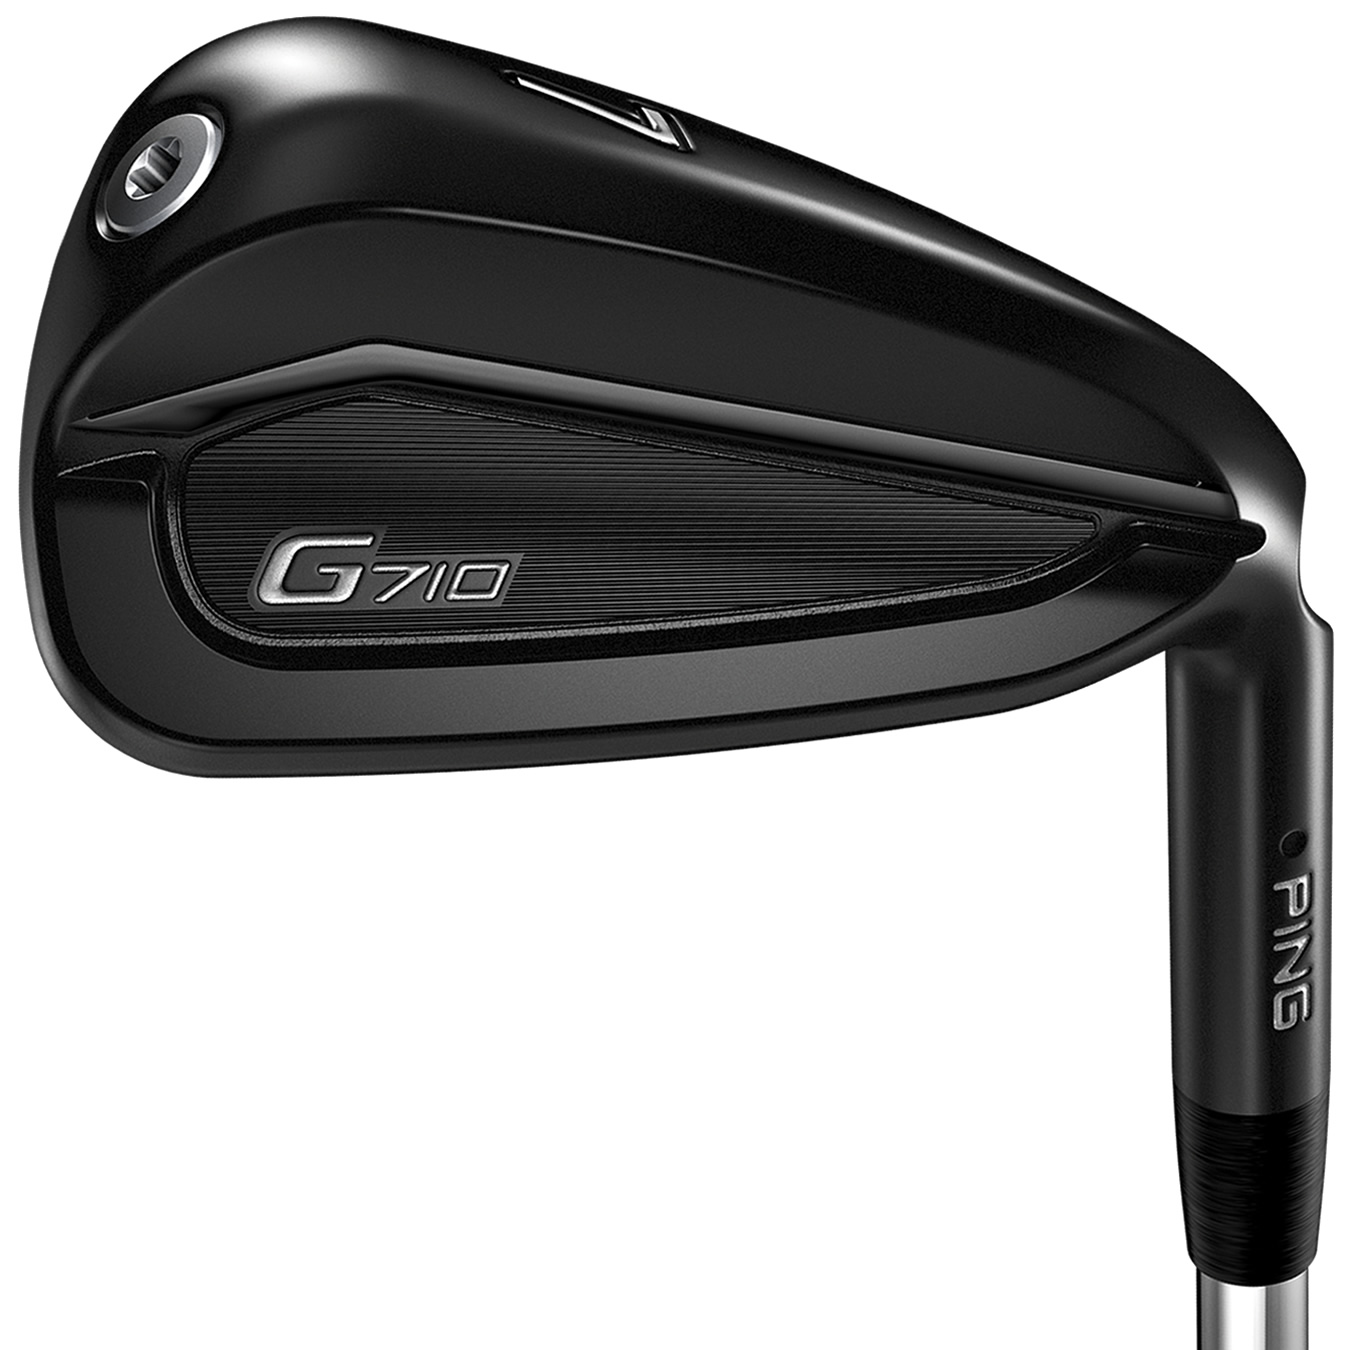 Ping G710 Golf Irons Steel